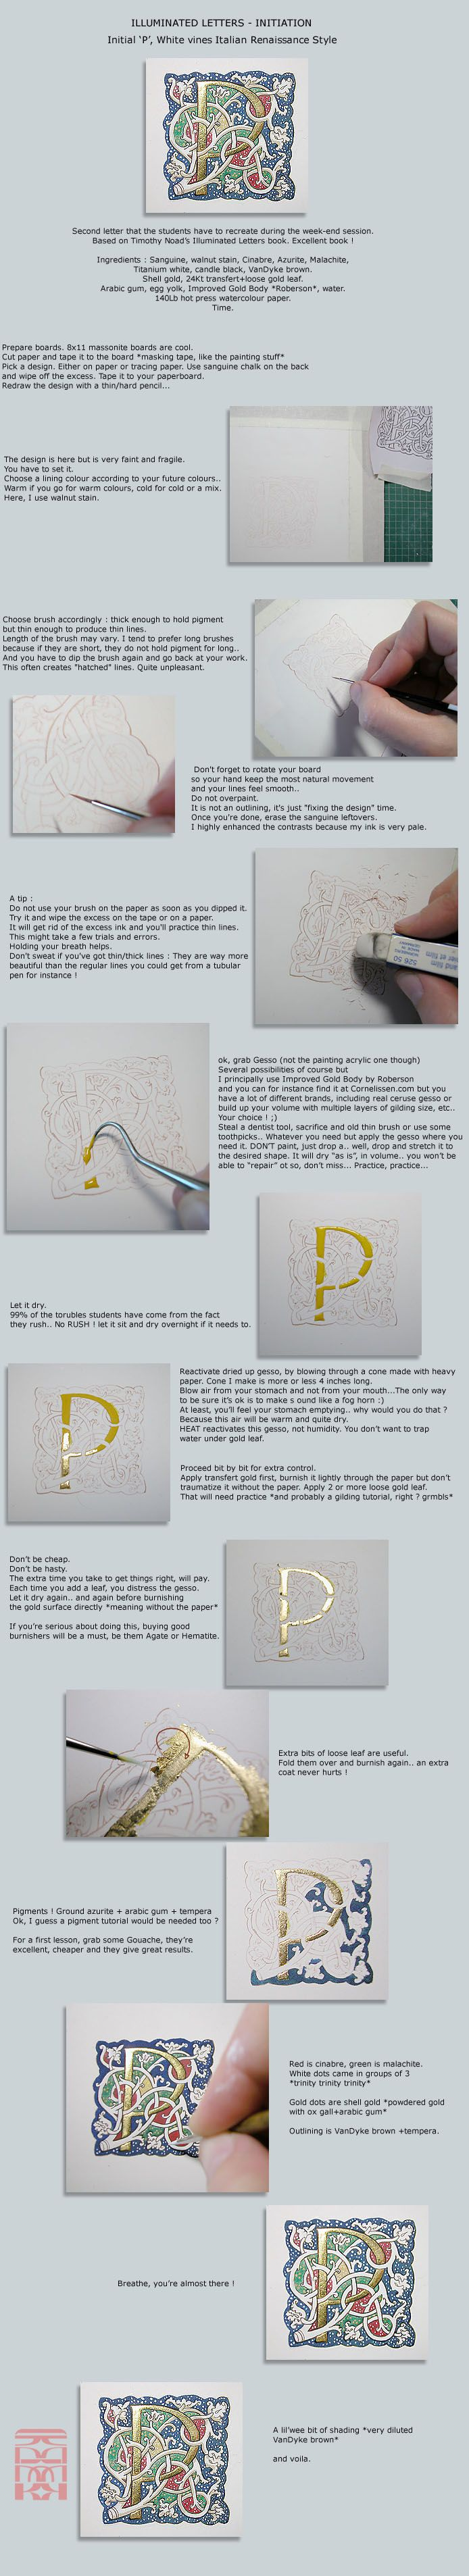 Illuminated 'P' - Tutorial   #calligraphy  #handlettering